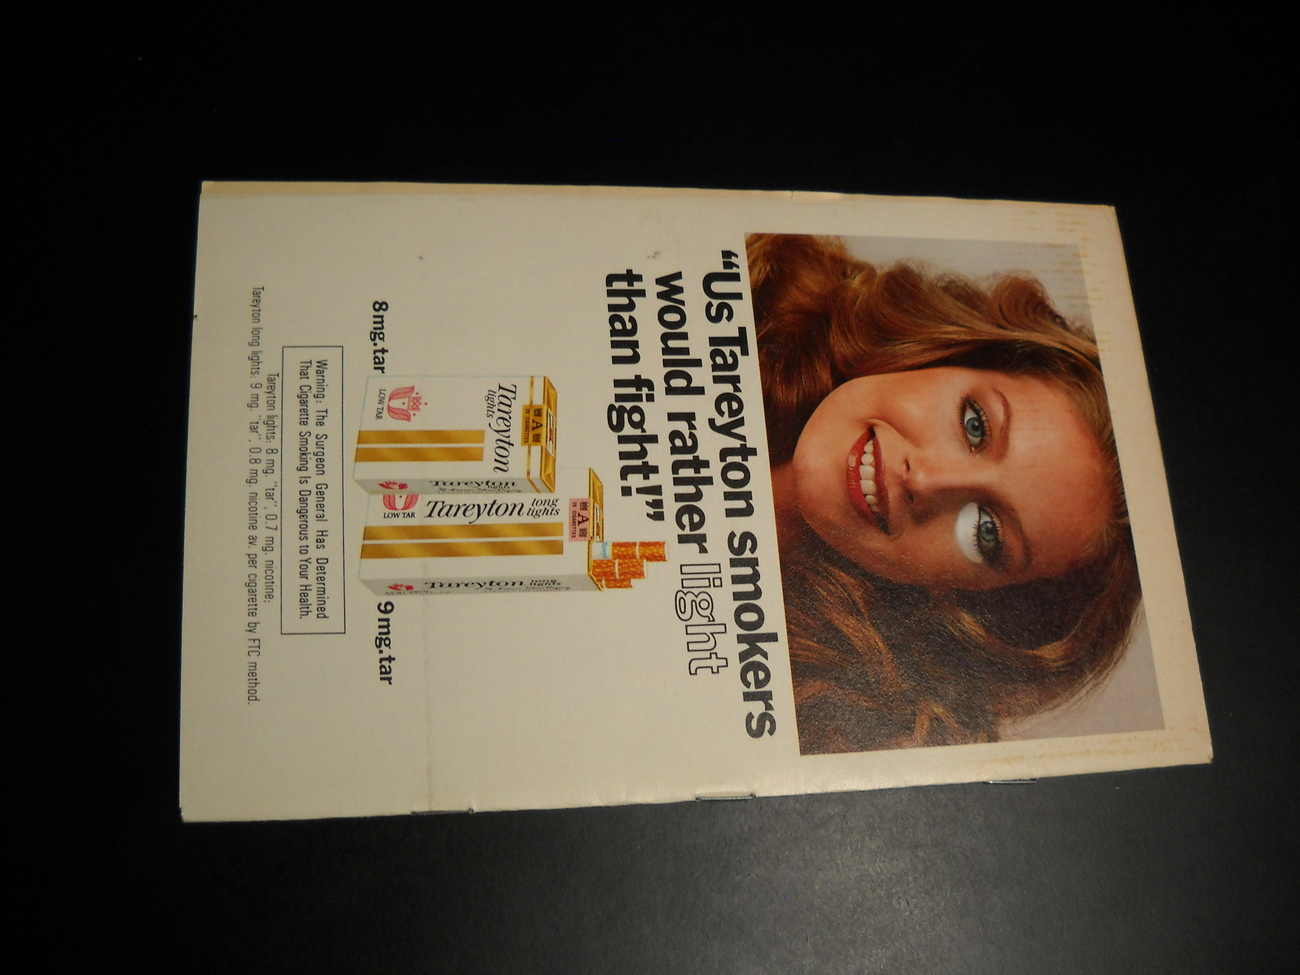 Monteith and Rand Playbill Booth Theater 1979 Producer James Lipton Suzanne Rand